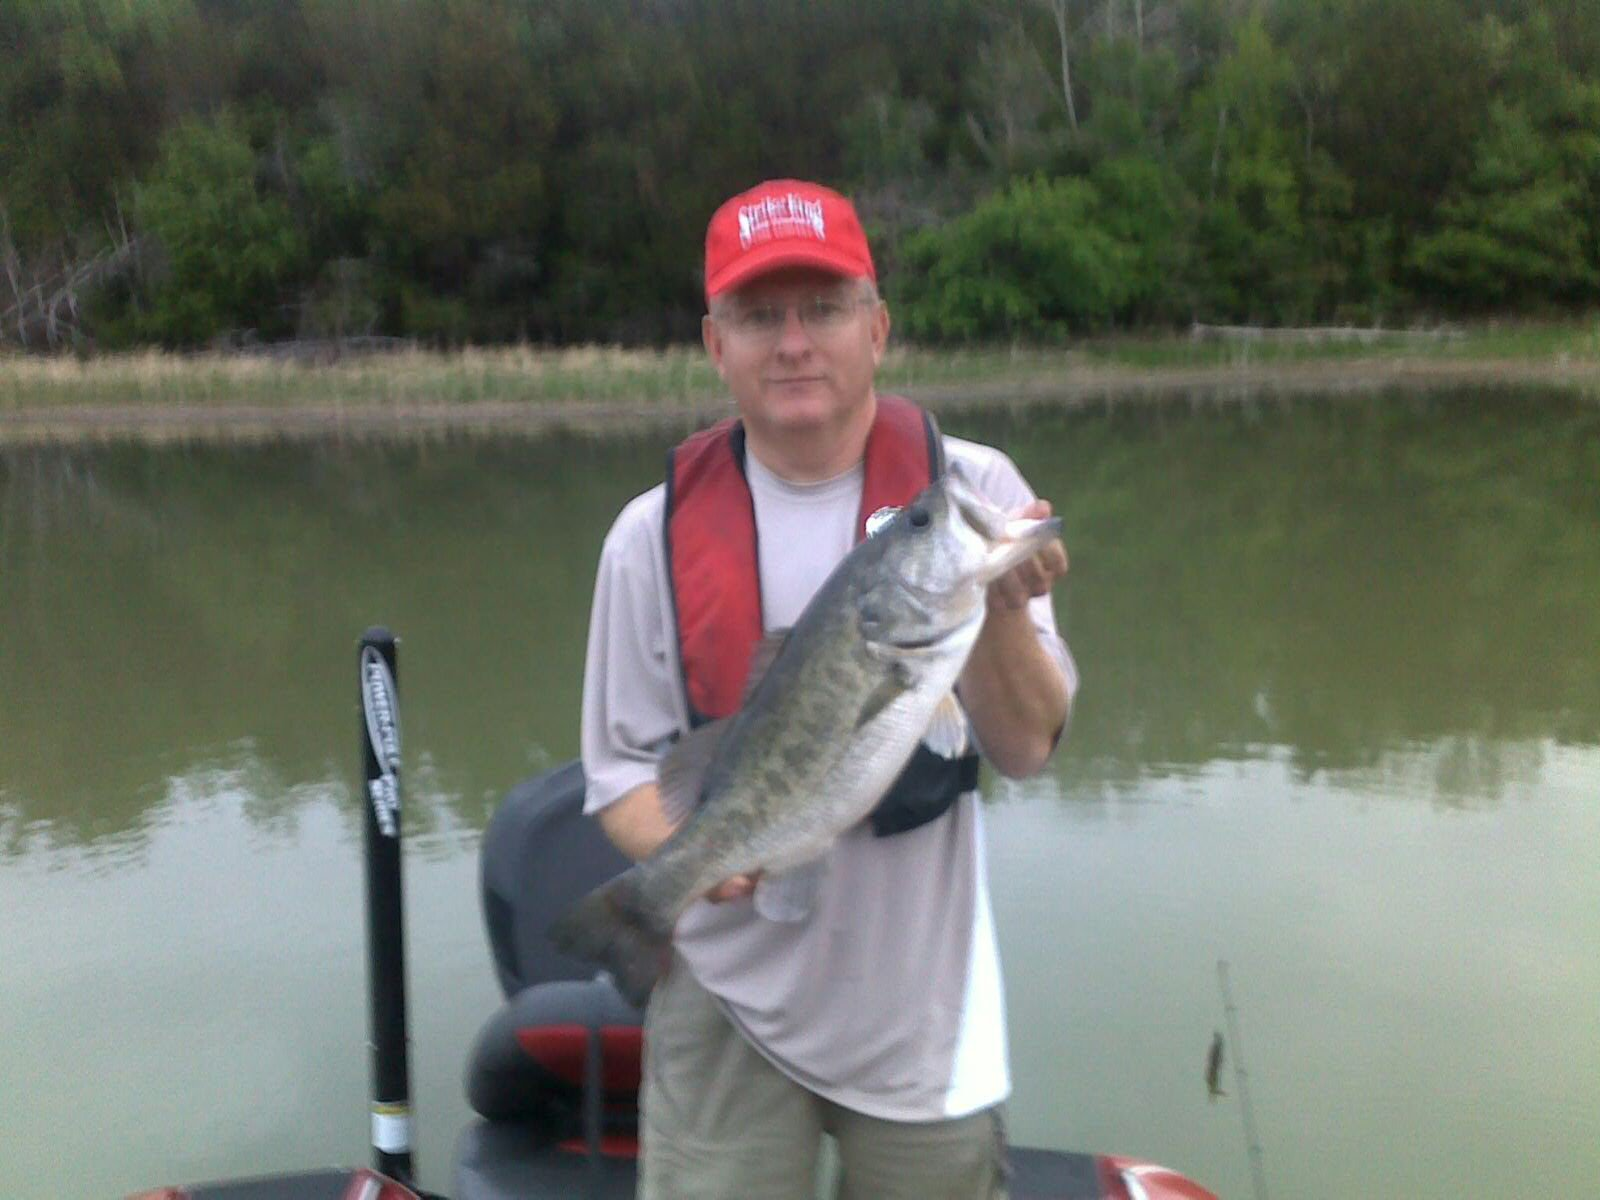 bass a specialty guide service